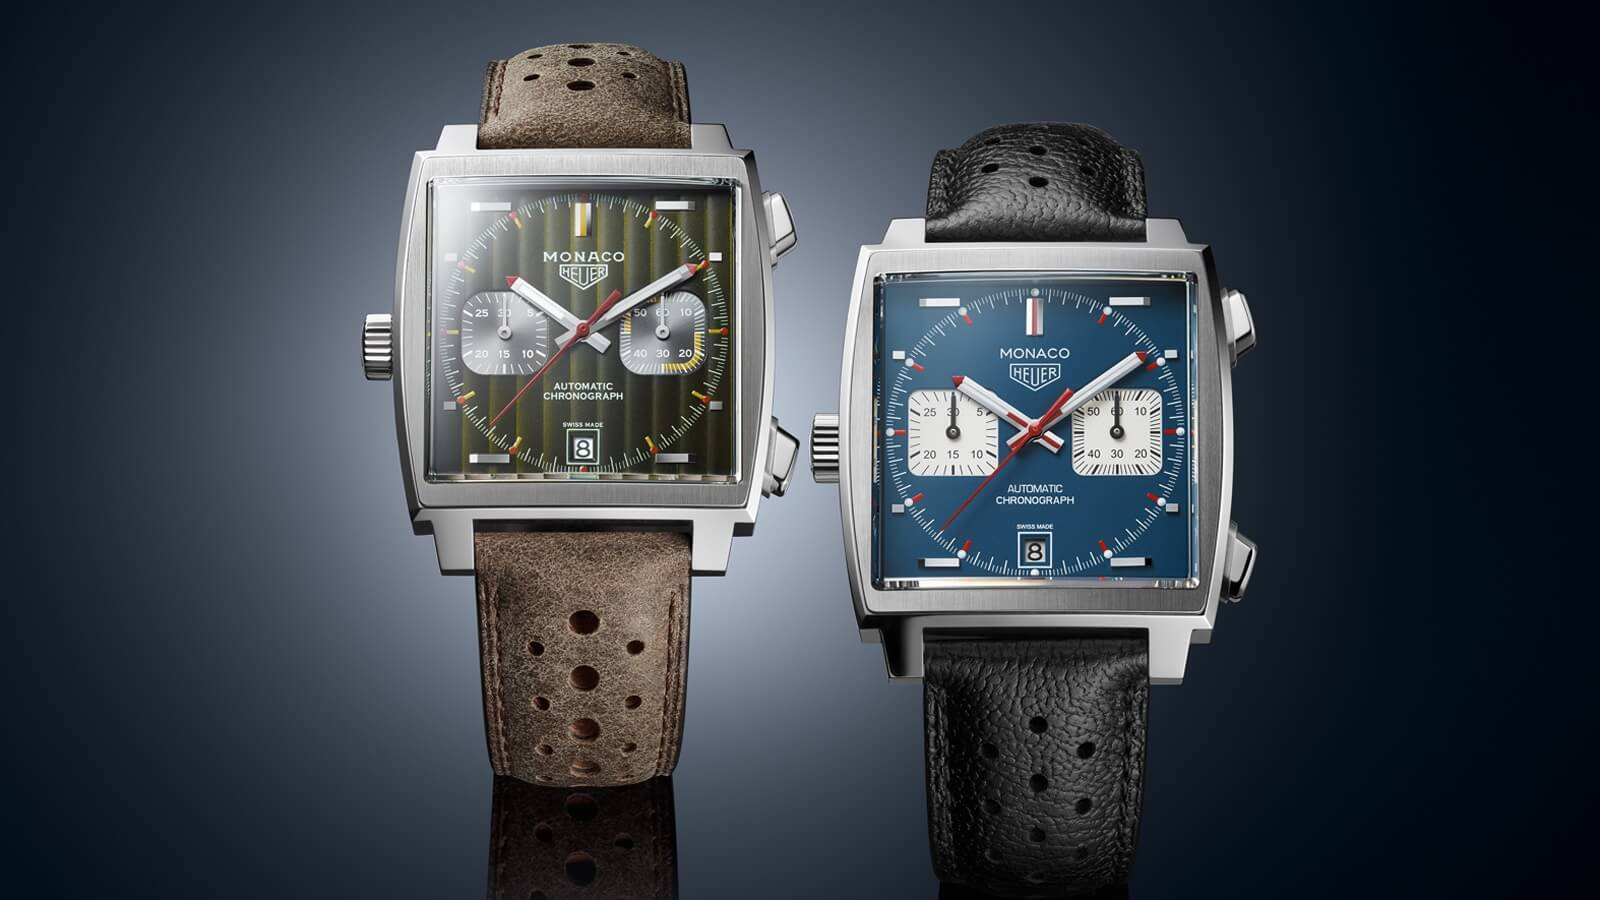 TAG Heuer Monaco 1969-1979 Limited Edition | WATCH REVIEW